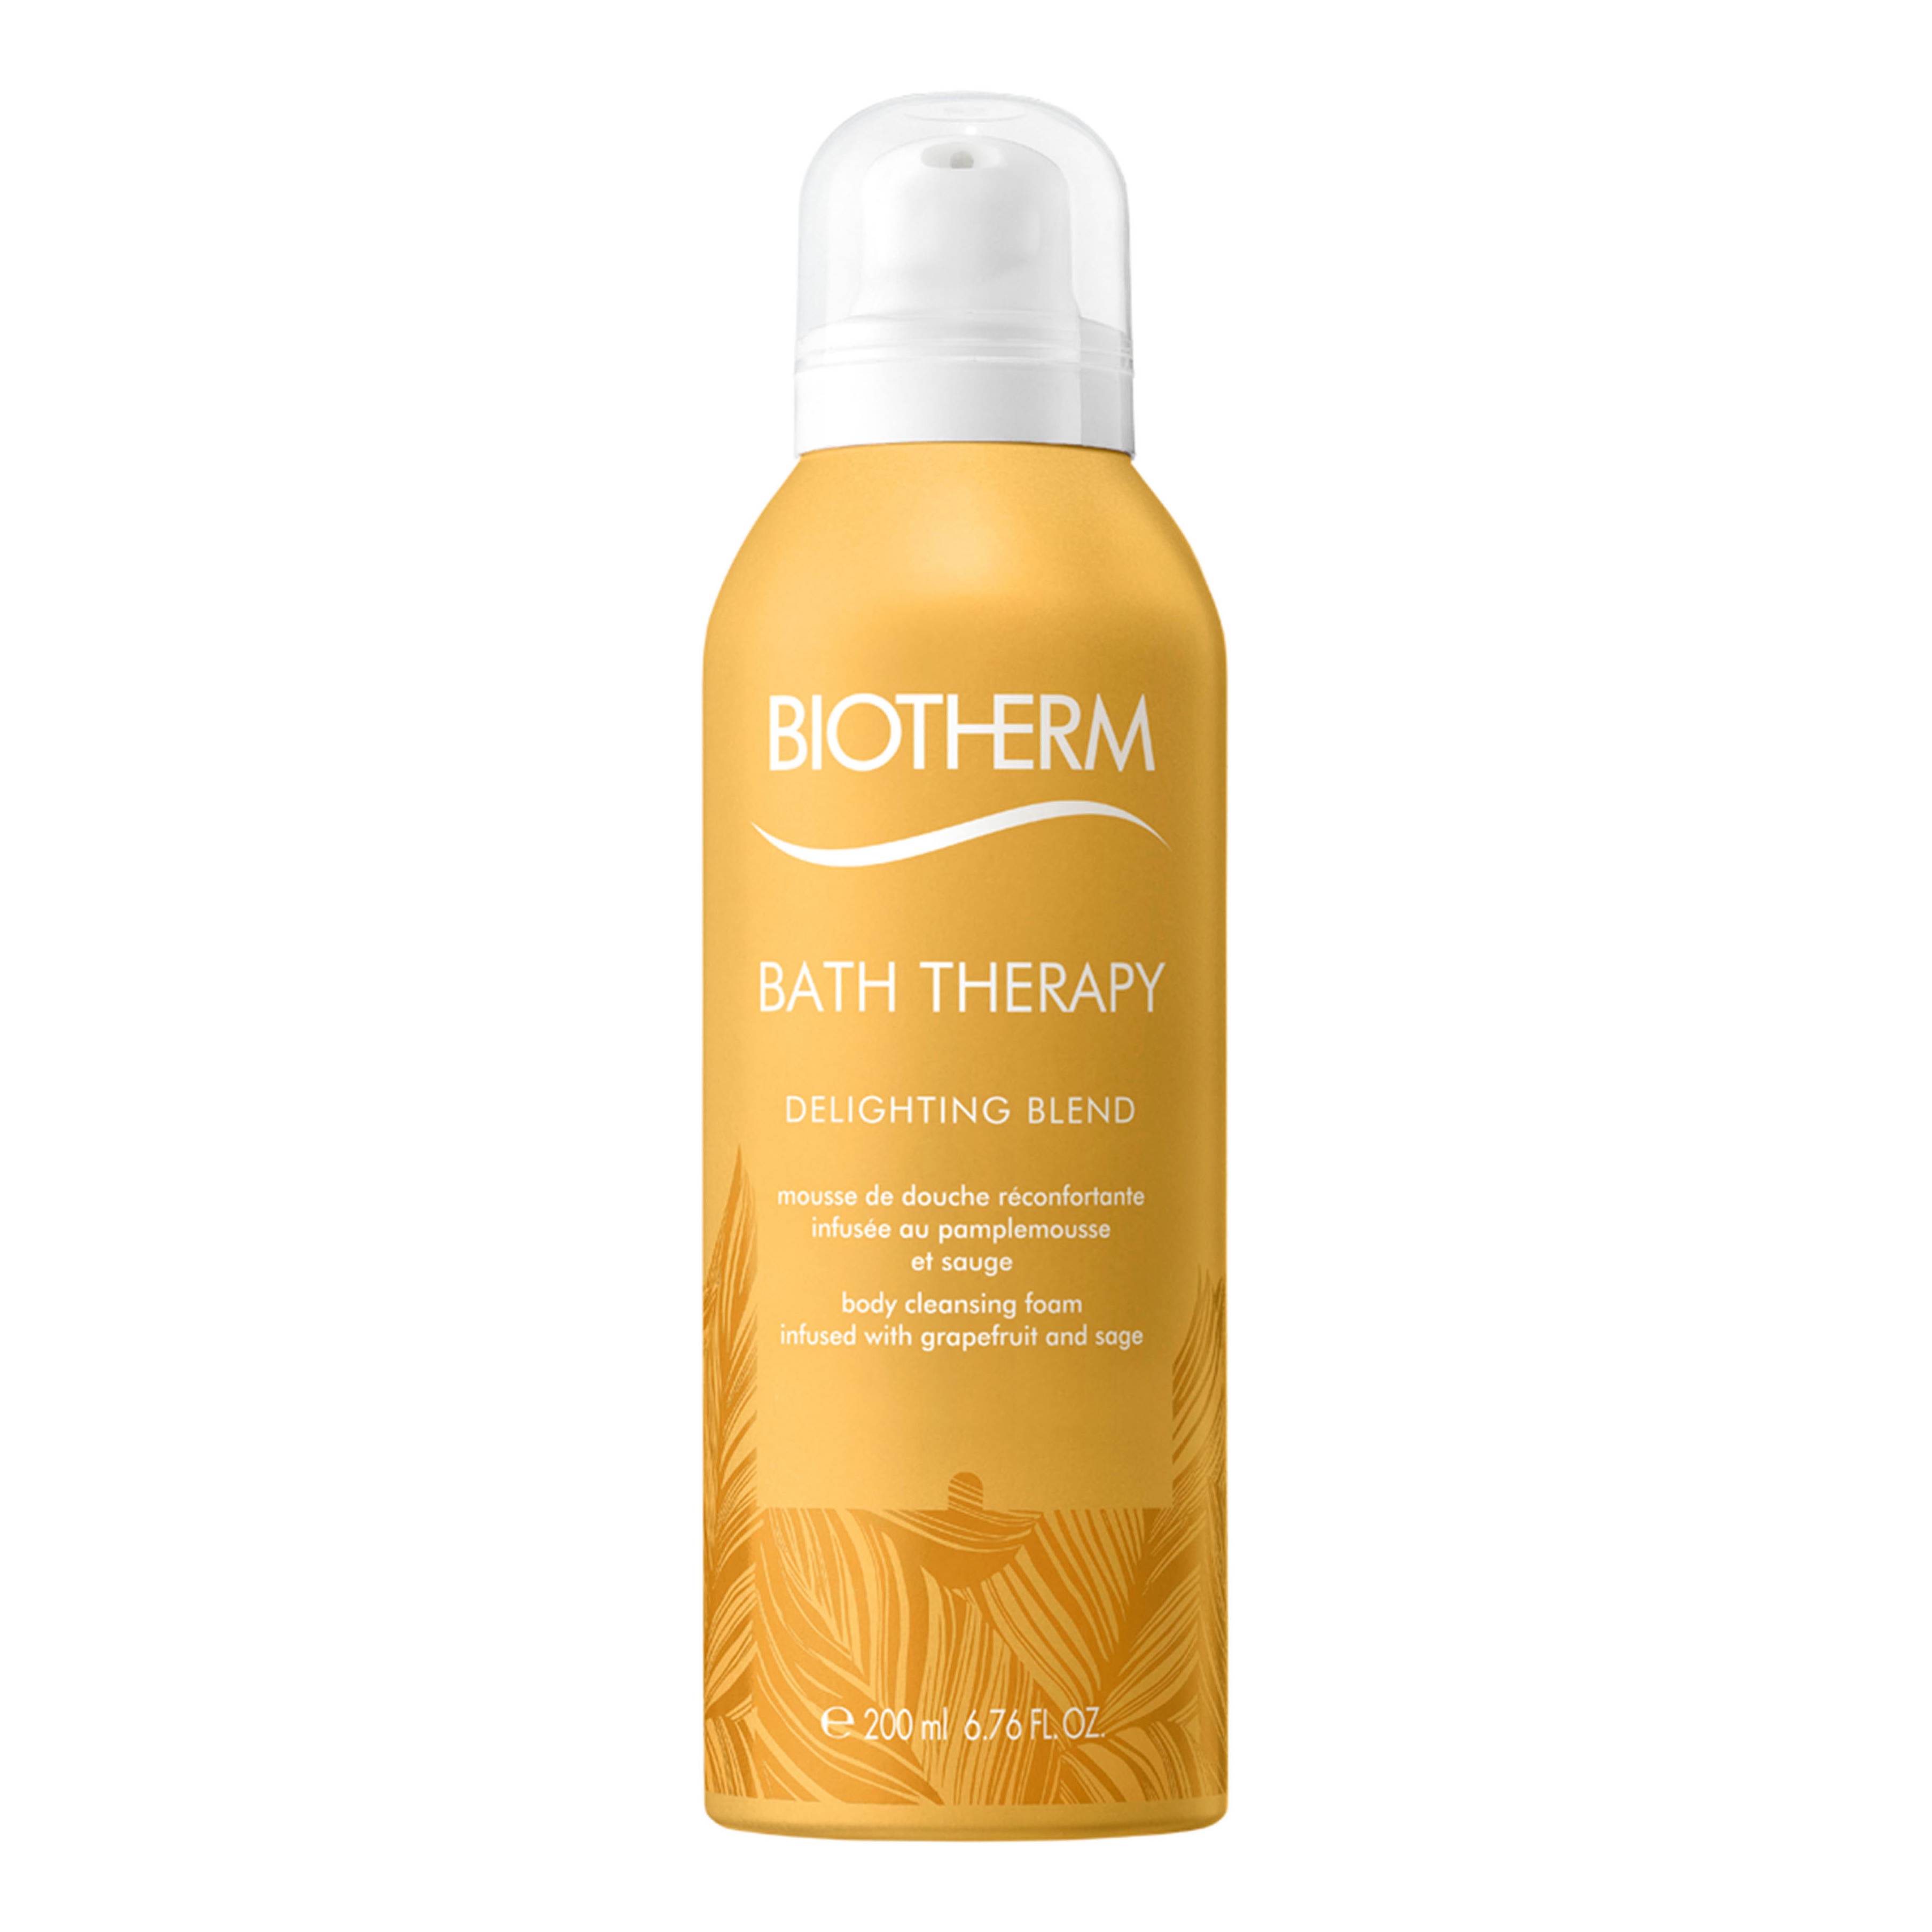 Bath Therapy. BIOTHERM Bath Therapy Delighting Blend Cleasing Foam 200ml